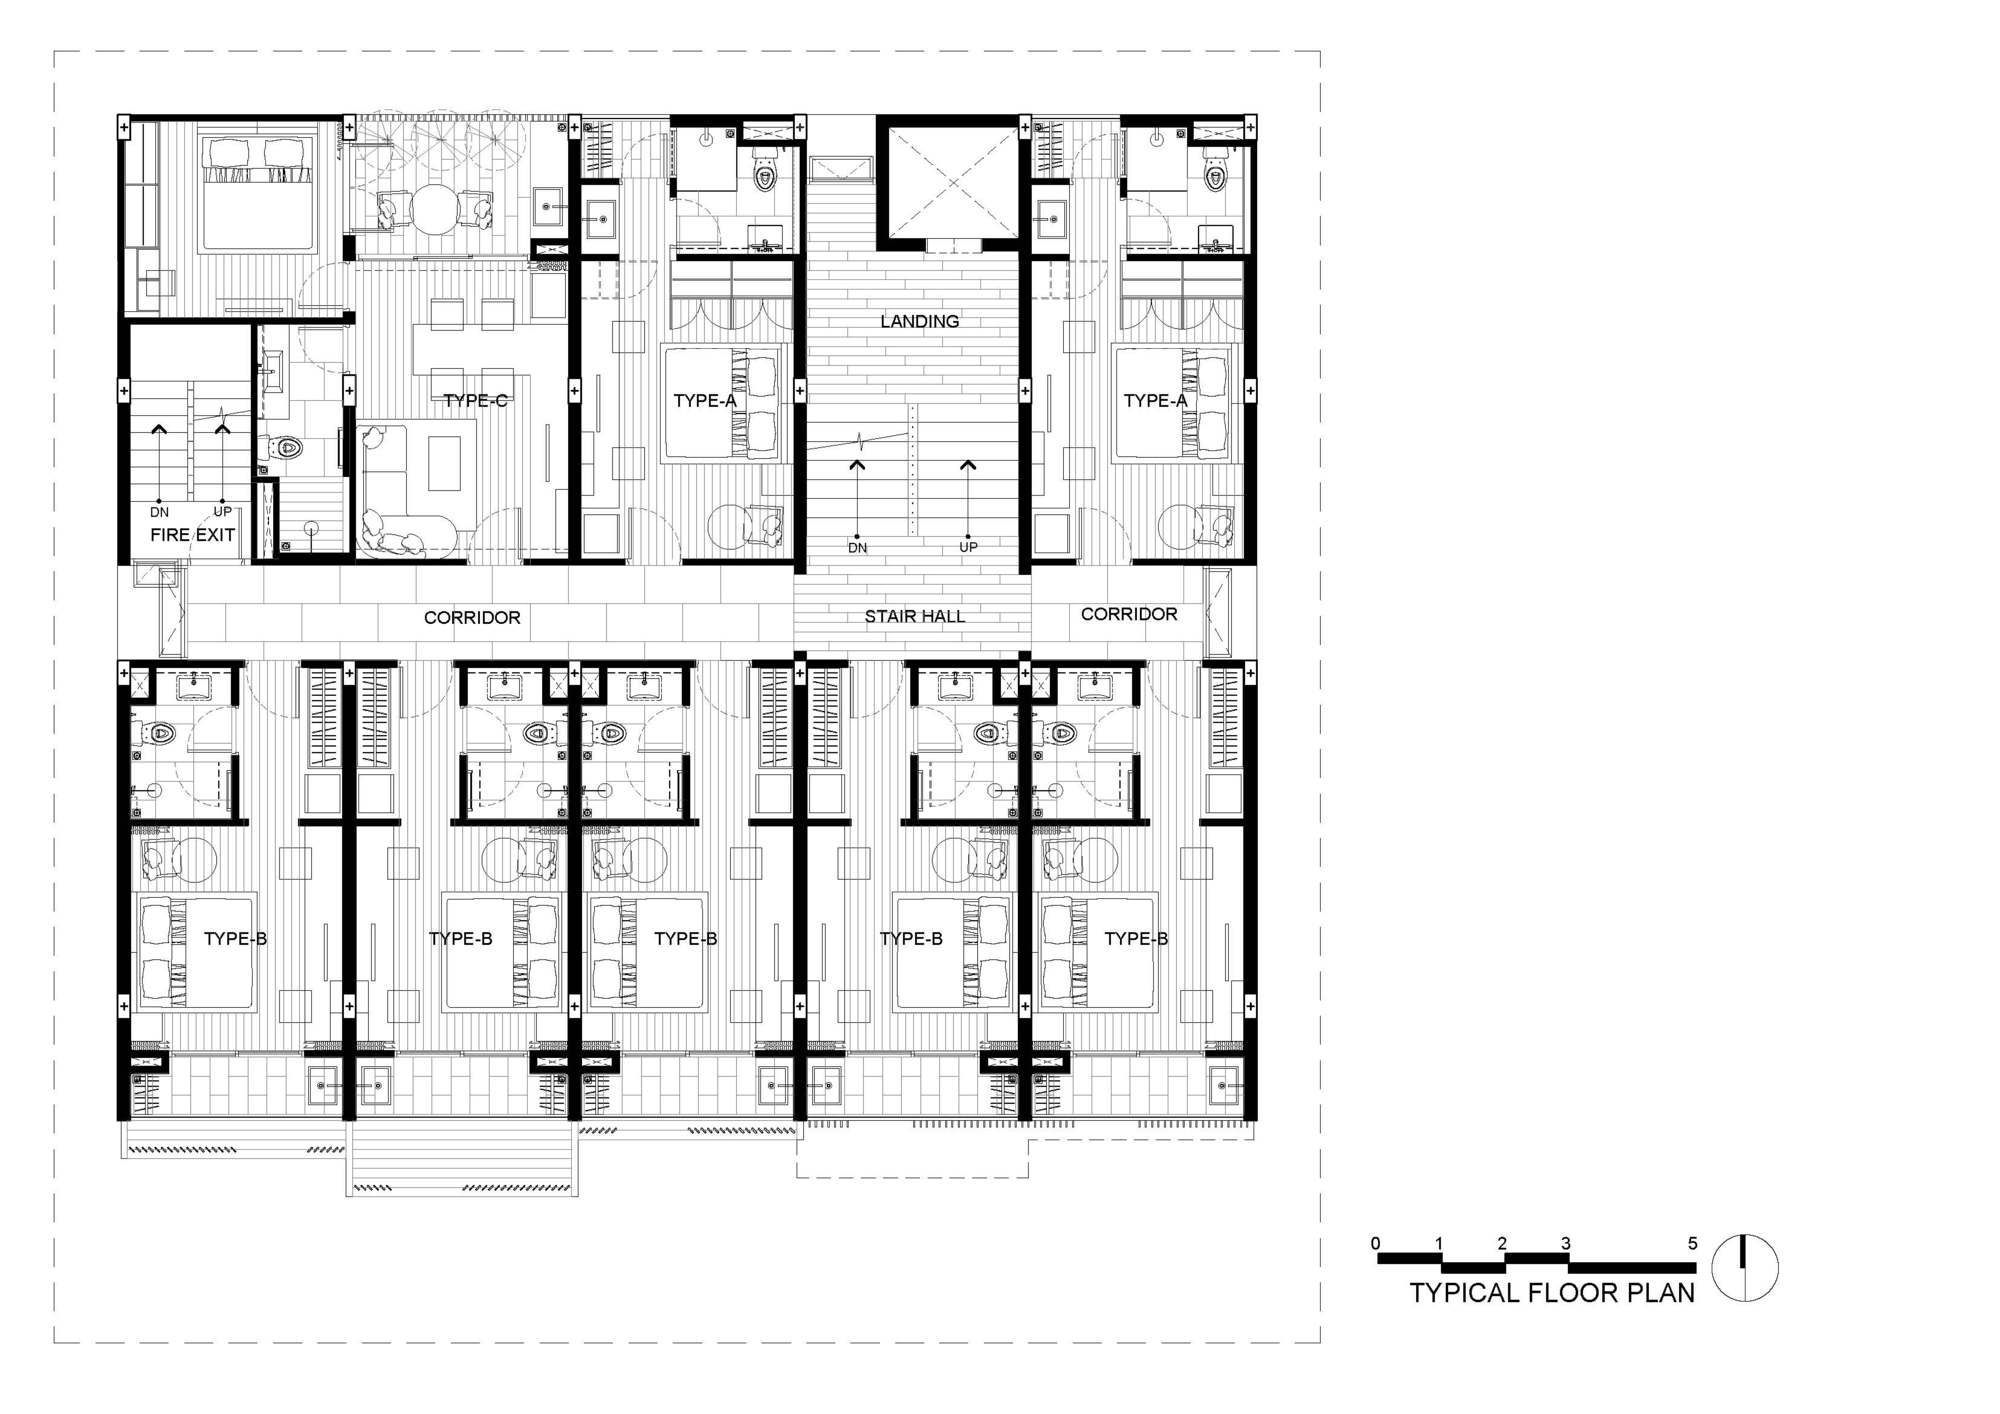 Апарт-отель HACHI в Бангкоке, Тайланд от бюро Octane Architect & Design, HQ architecture, HQarch, HQ arch, high quality architecture